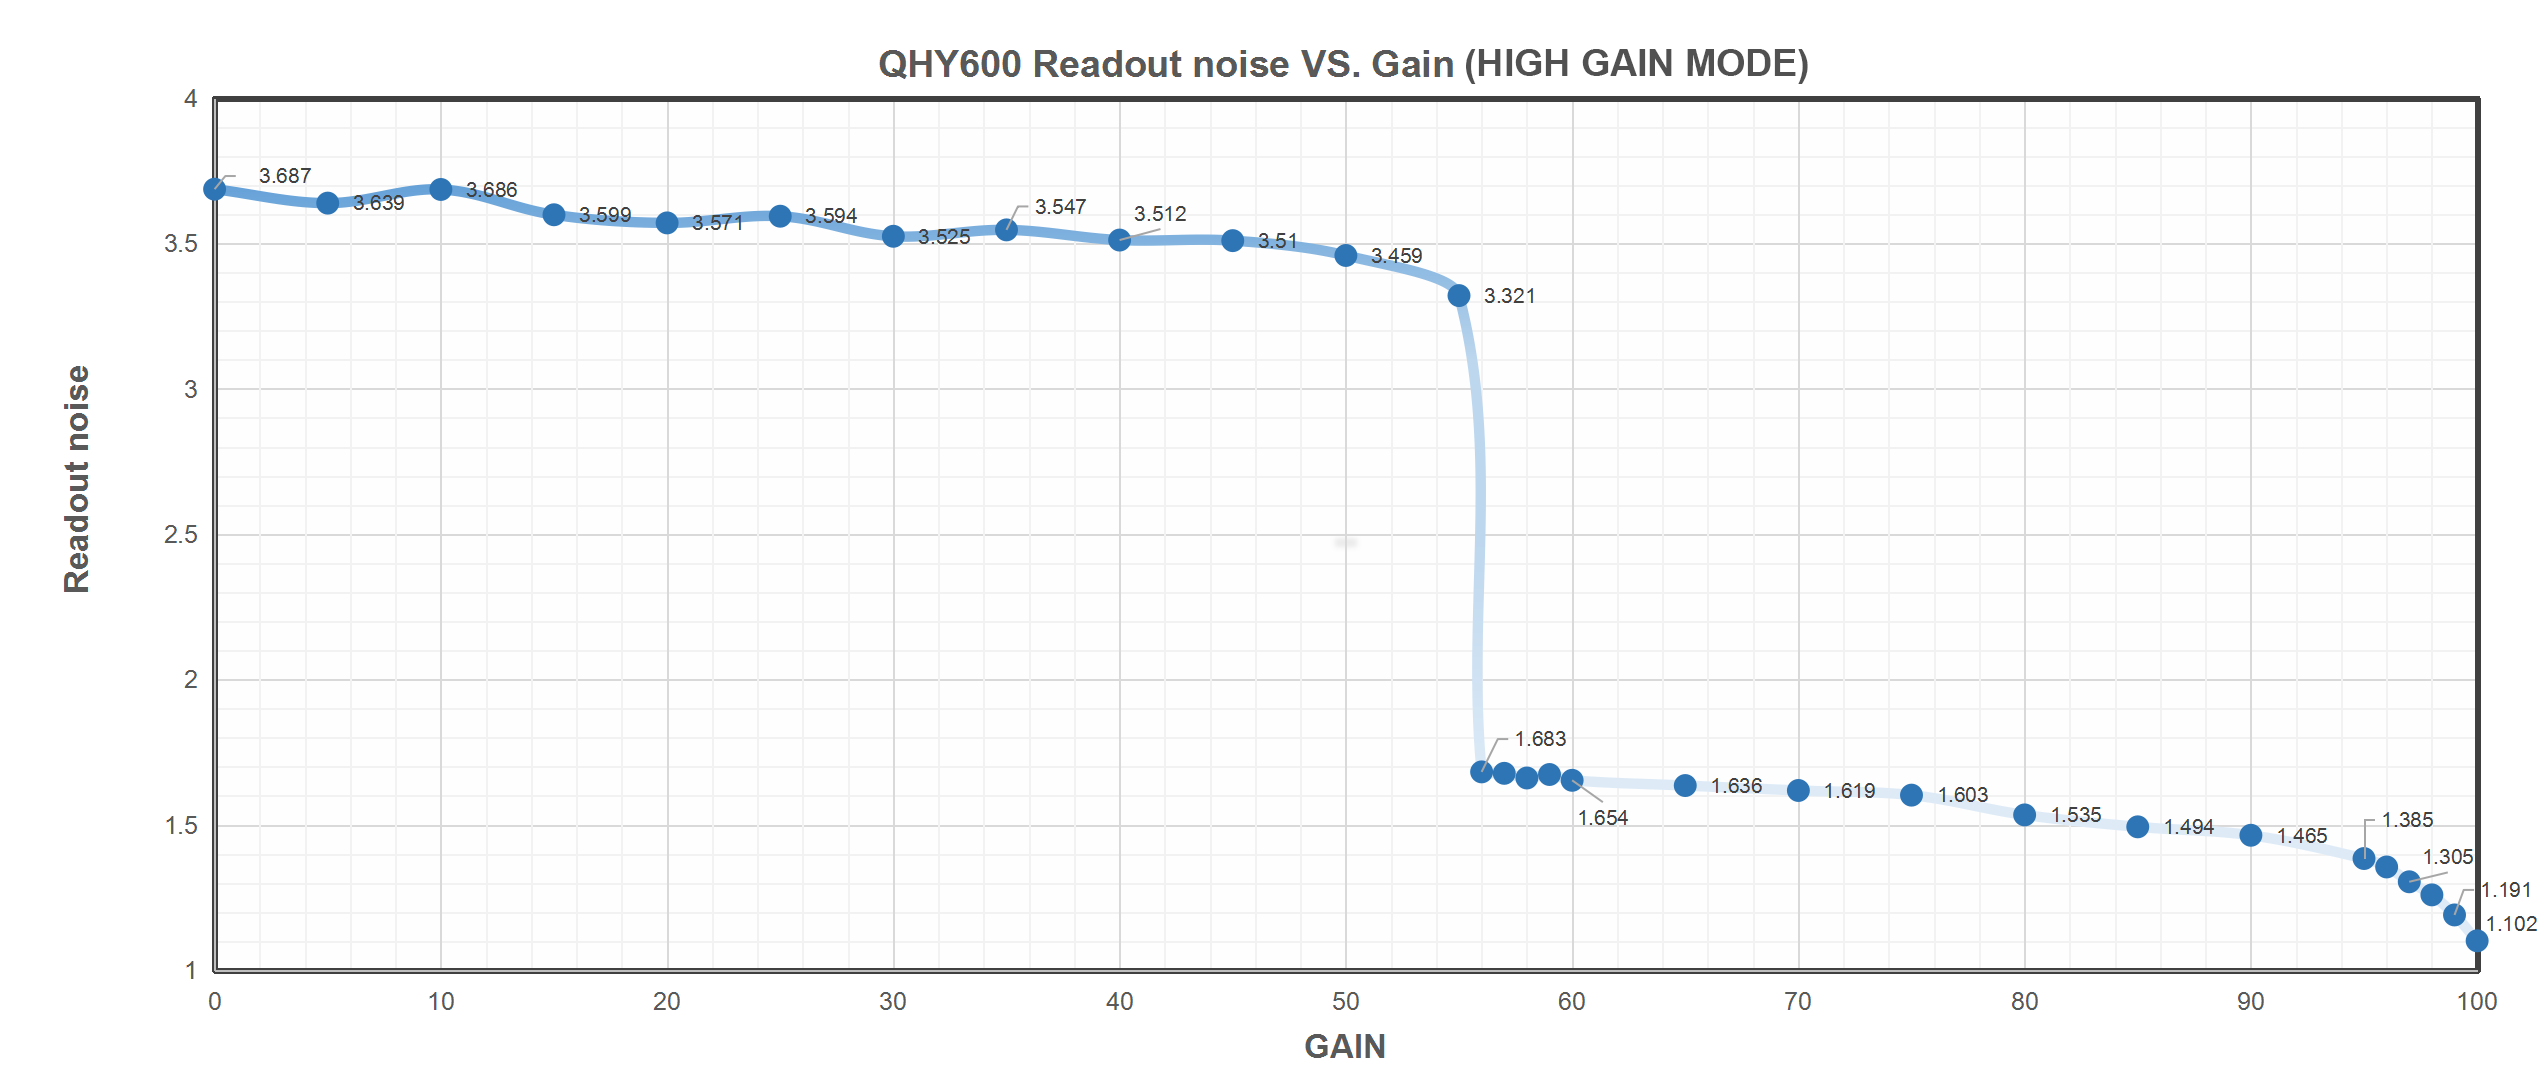 QHY600 Readout noise VS. Gain (High Mode Mode)